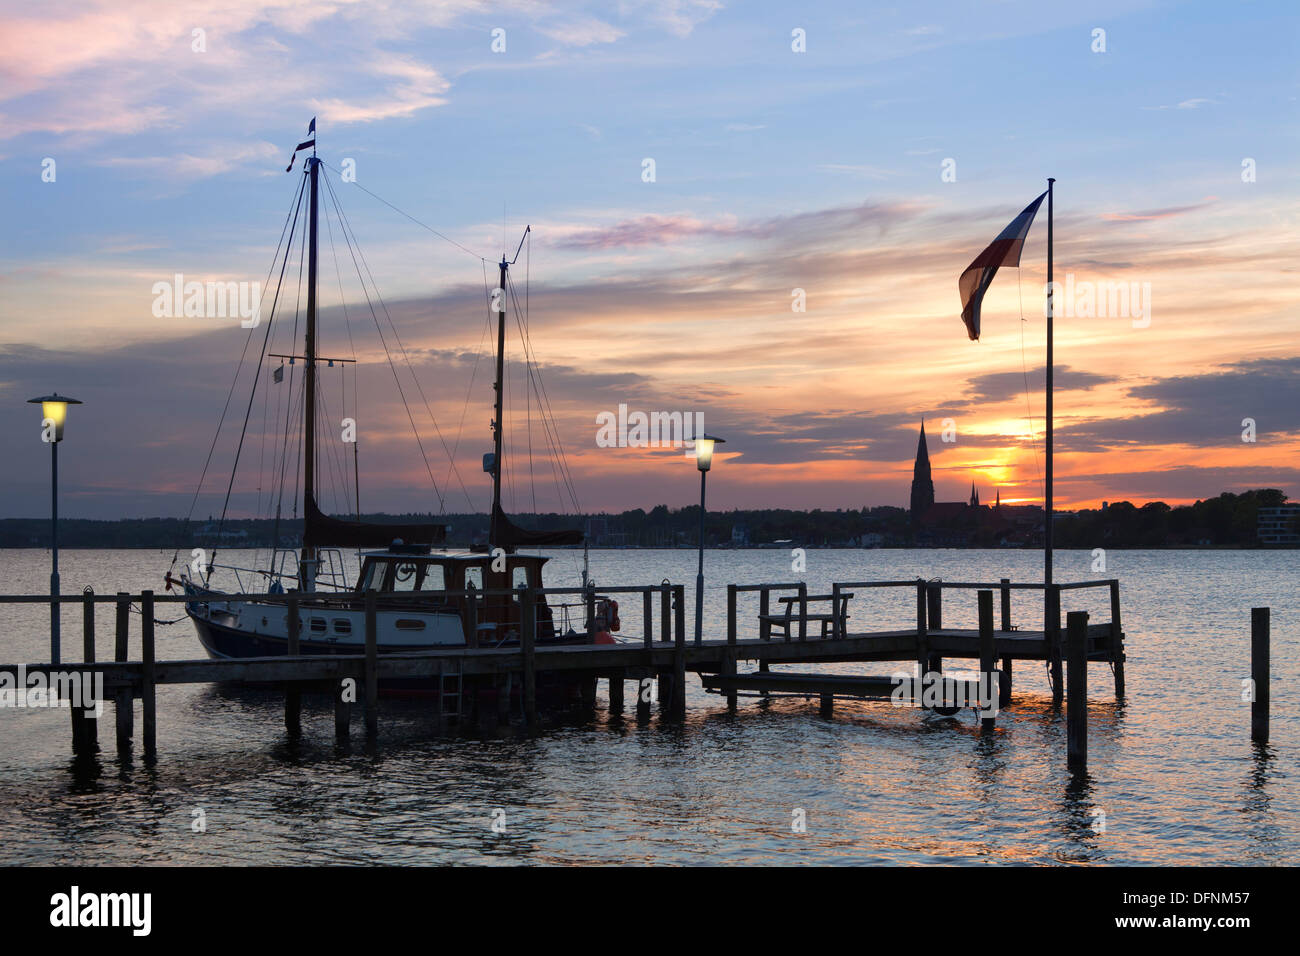 View from a pier onto the cathedral St Petri at sunset, Schleswig, Schlei fjord, Baltic Sea, Schleswig-Holstein, Germany, Europe - Stock Image